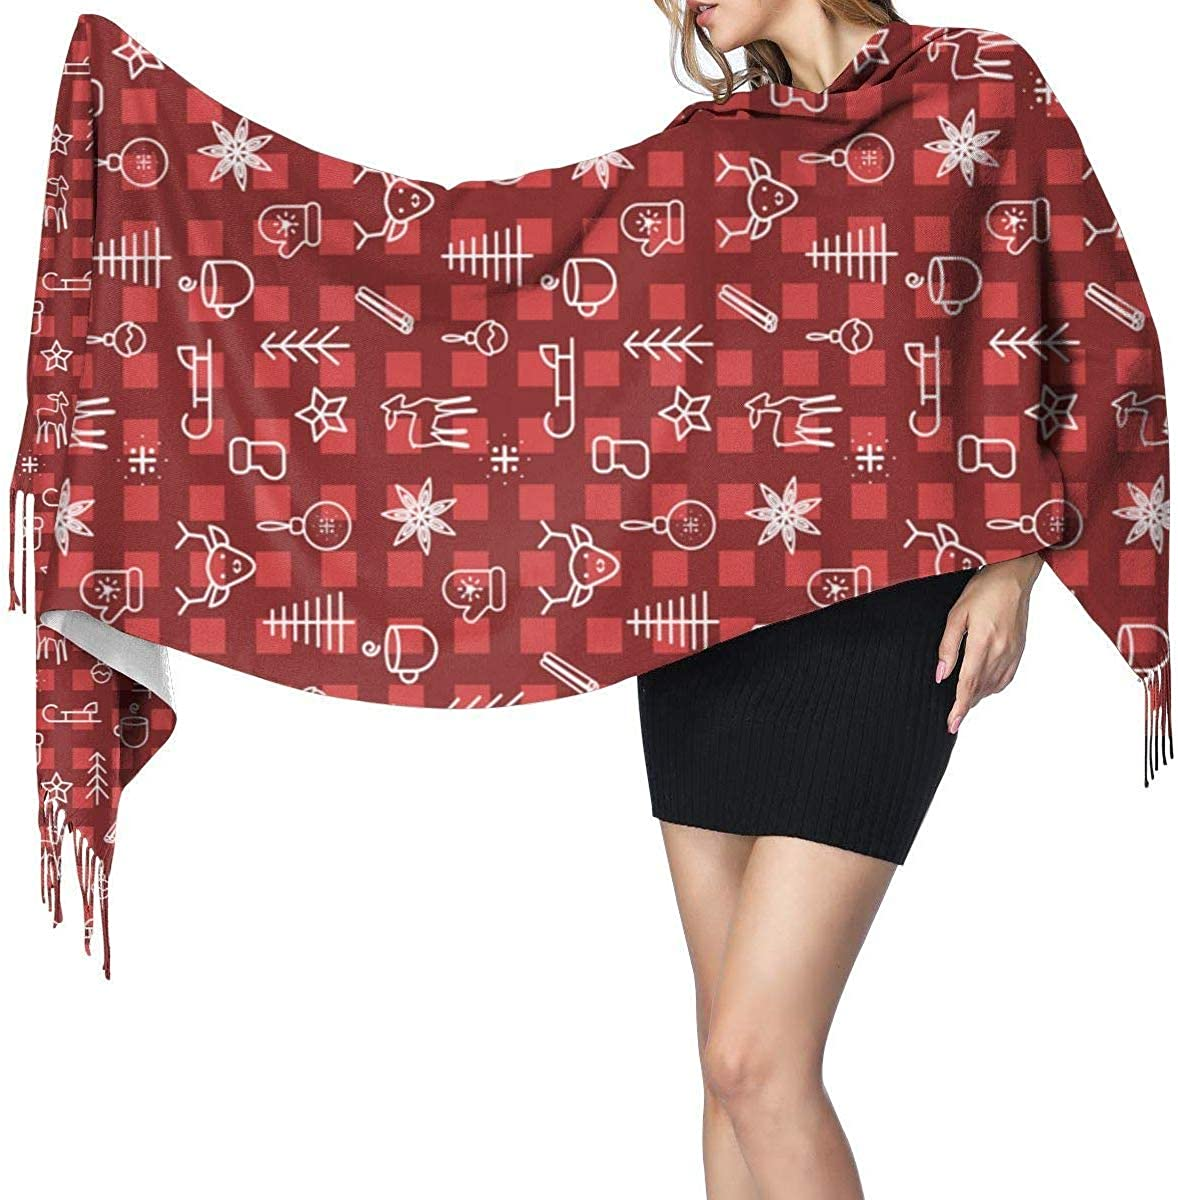 Red Checkered New Year Cashmere Scarf Shawl Wraps Super Soft Warm Tassel Scarves For Women Office Worker Travel